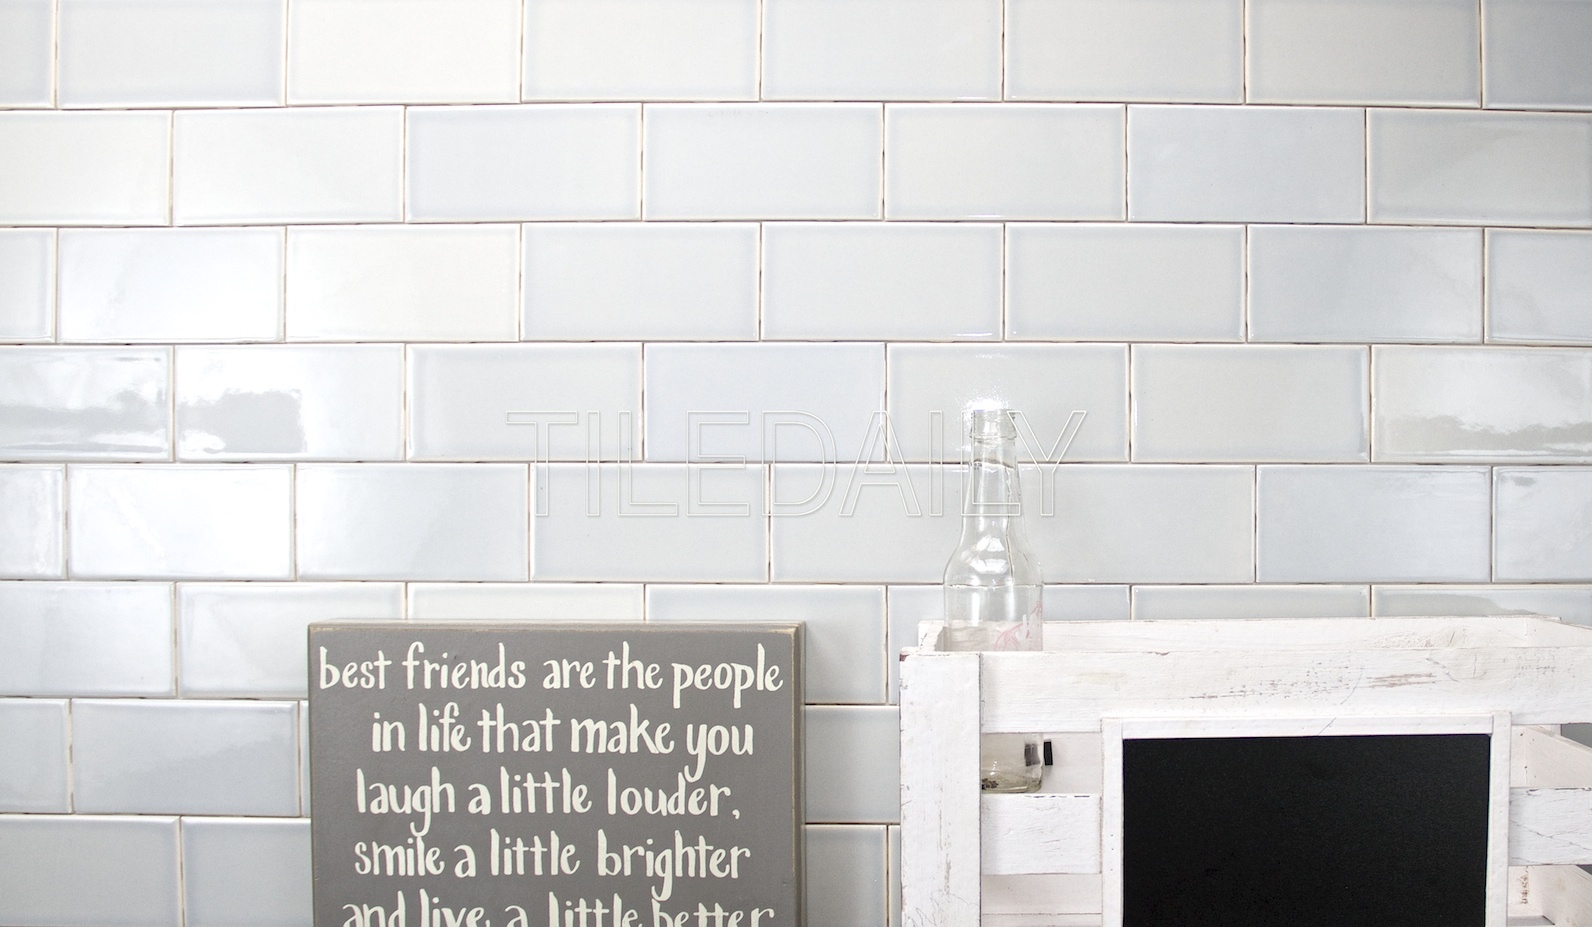 Awesome 12X12 Ceiling Tiles Thin 2 X 8 Subway Tile Rectangular 24 Ceramic Tile 24 X 24 Ceiling Tiles Old 24X24 Ceiling Tiles Green2X2 Floor Tile Ceramic Subway Tile, Mint Green \u2013 Tiledaily